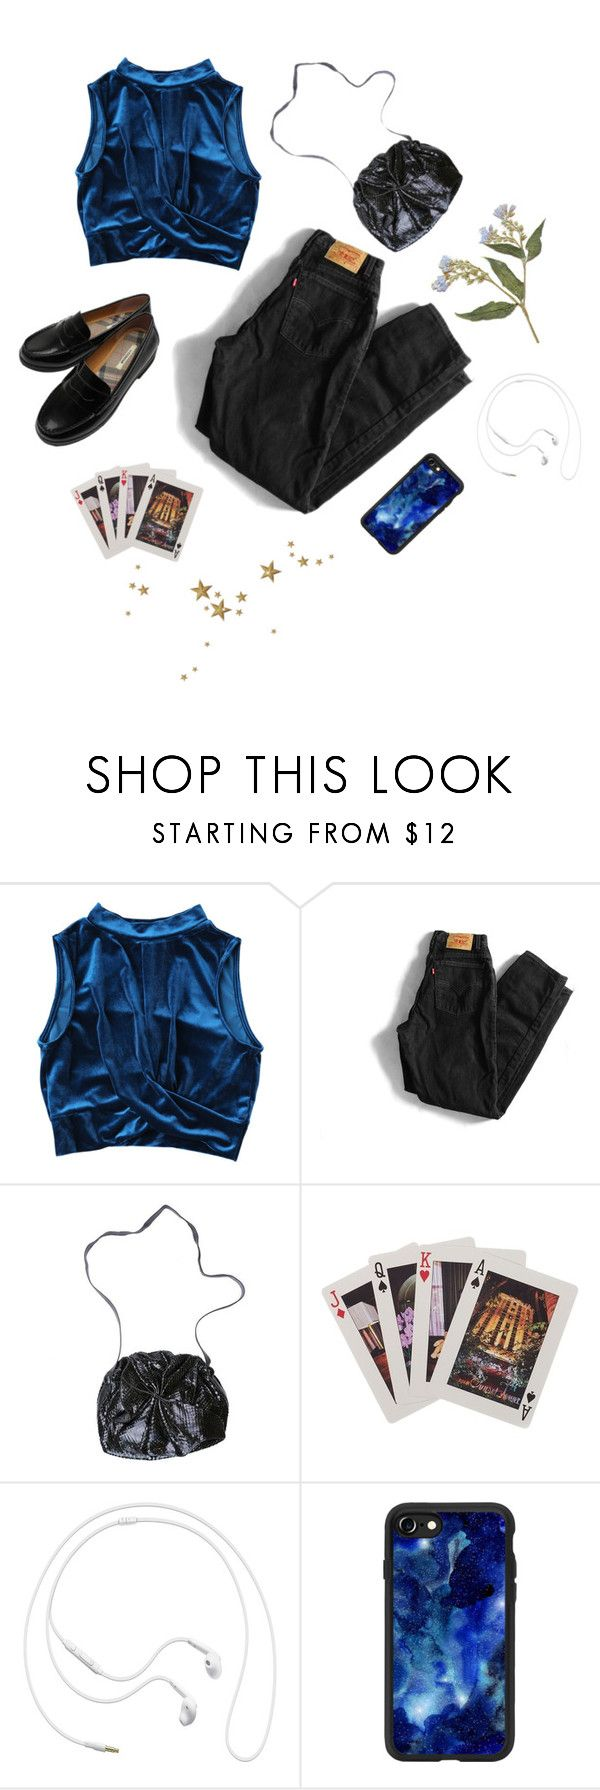 """""""You Can Ask, But You Won't Like the Answer"""" by owlenstar on Polyvore featuring Levi's, Carlos Falchi, Kate Spade, 10¹² Terra, Samsung and Casetify"""